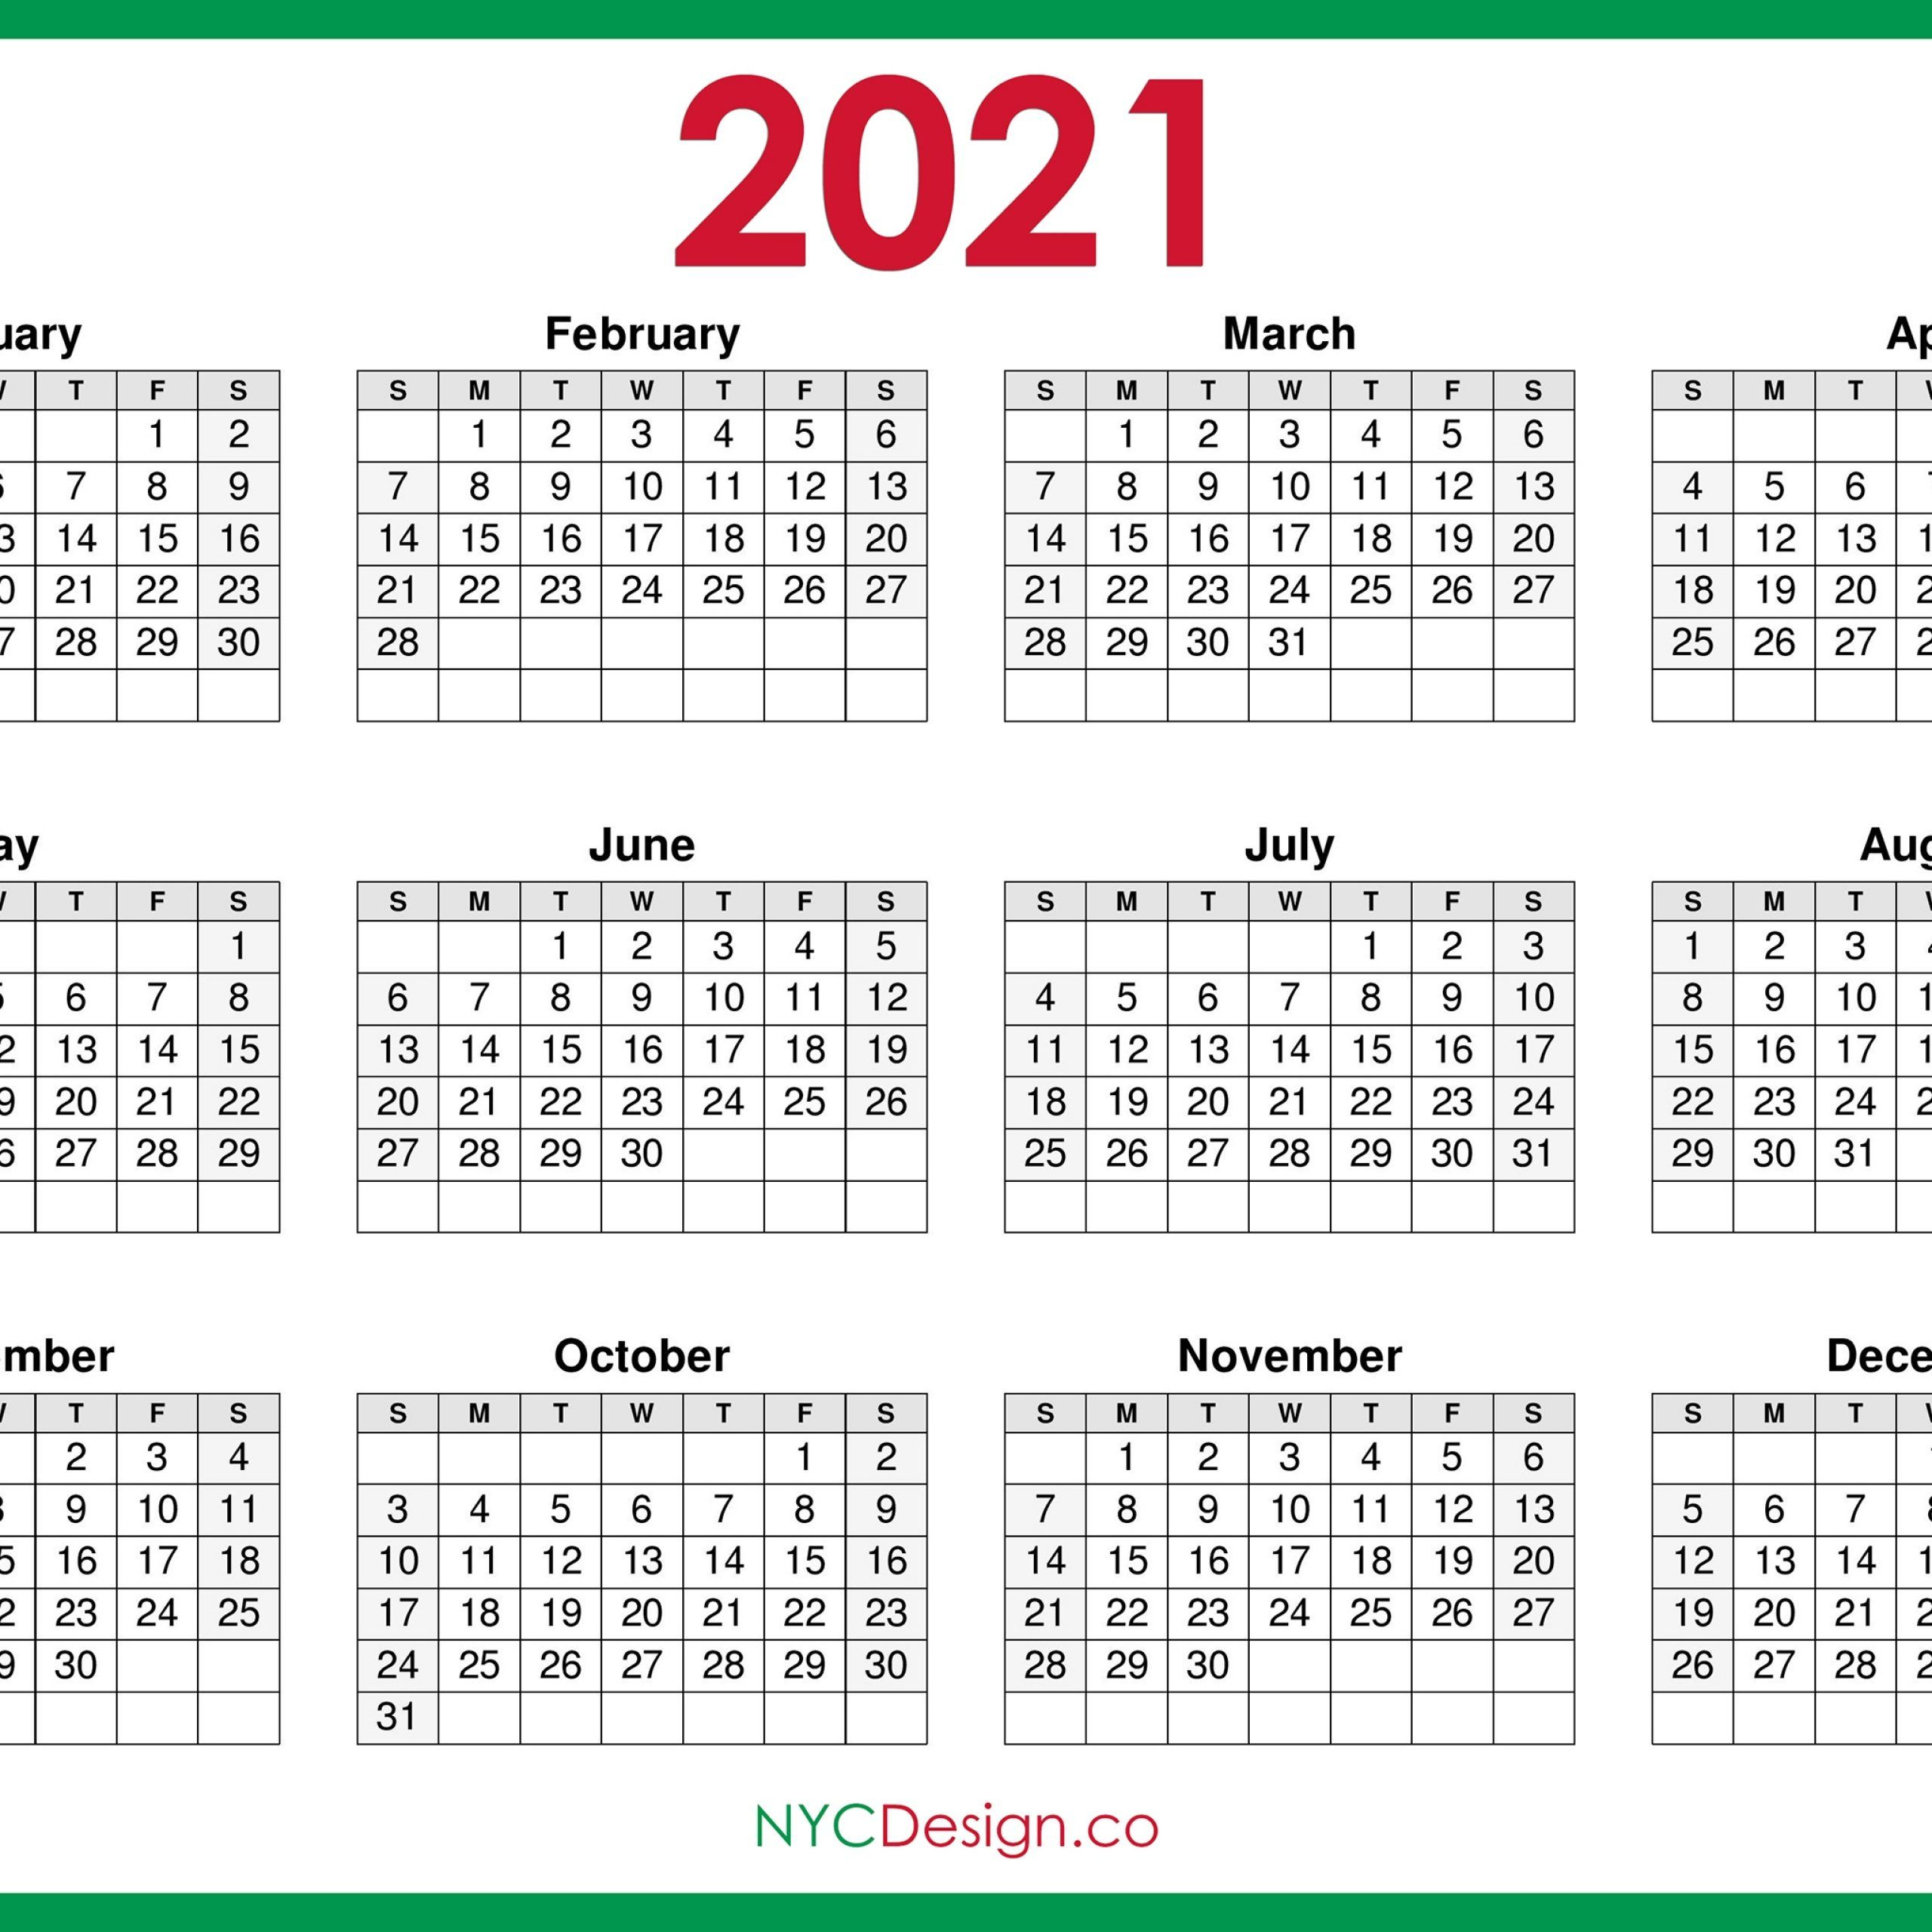 2021 Calendar Hd Image Di 2020 With U Of M Twin Cities 2020 2021 Calendar